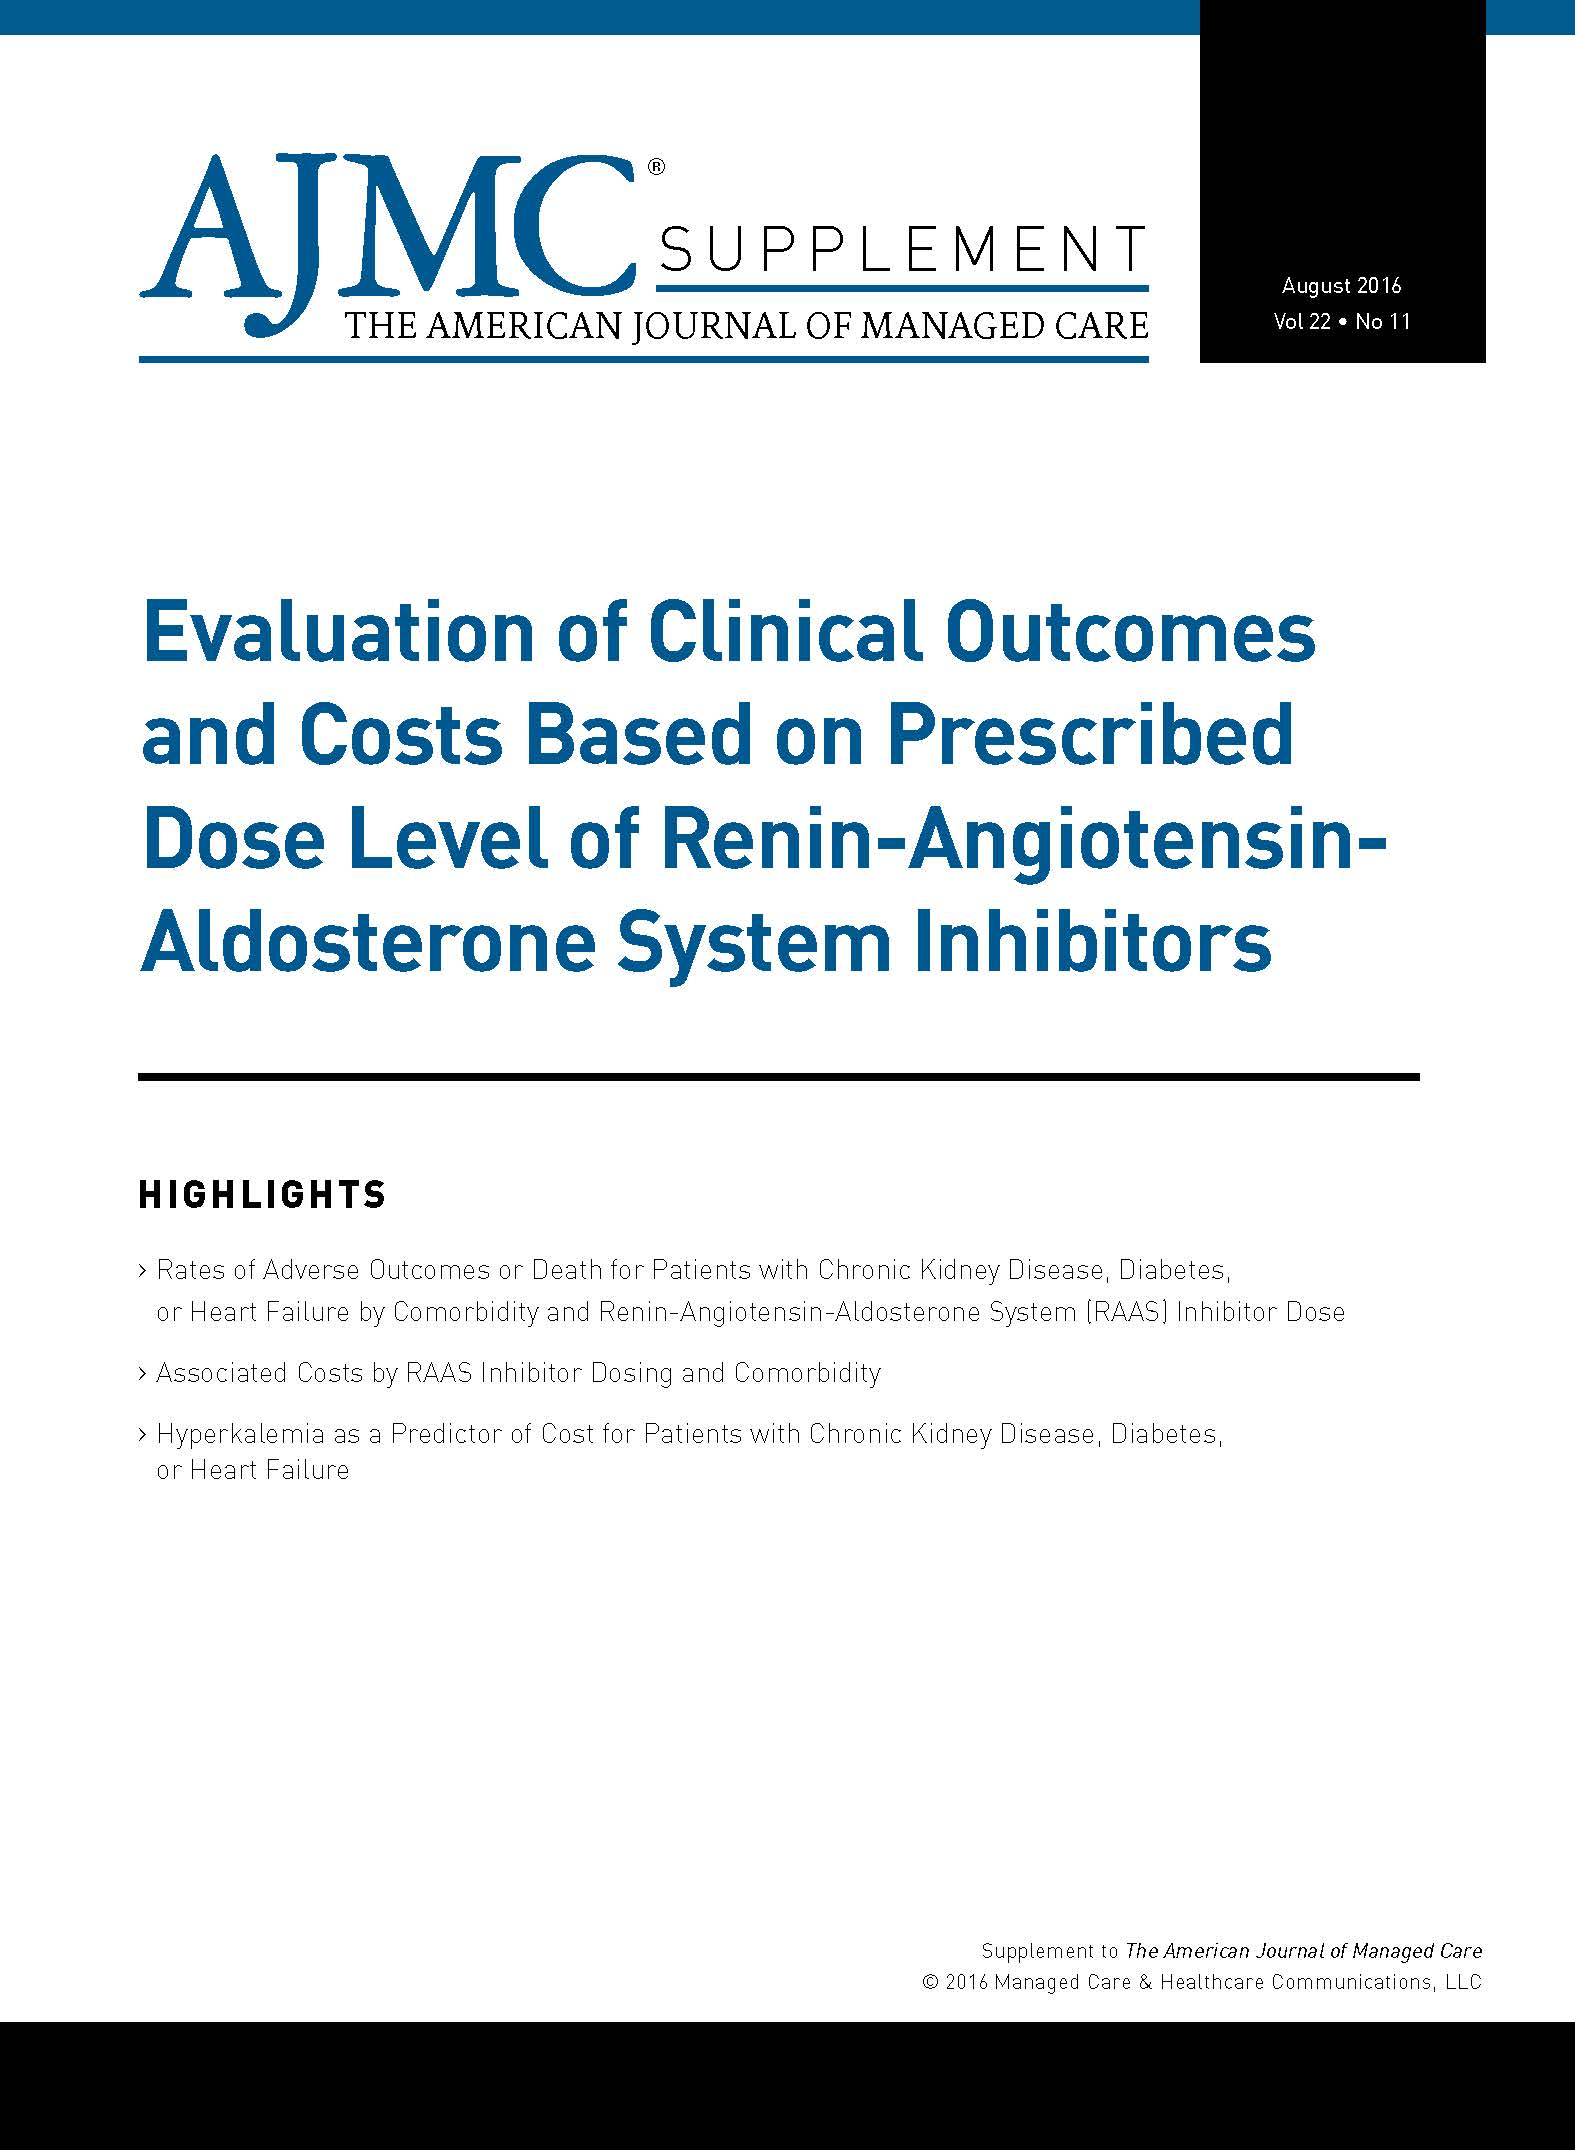 Evaluation of Clinical Outcomes and Costs Based on Prescribed Dose Level of Renin-Angiotensin-Aldosterone System Inhibitors